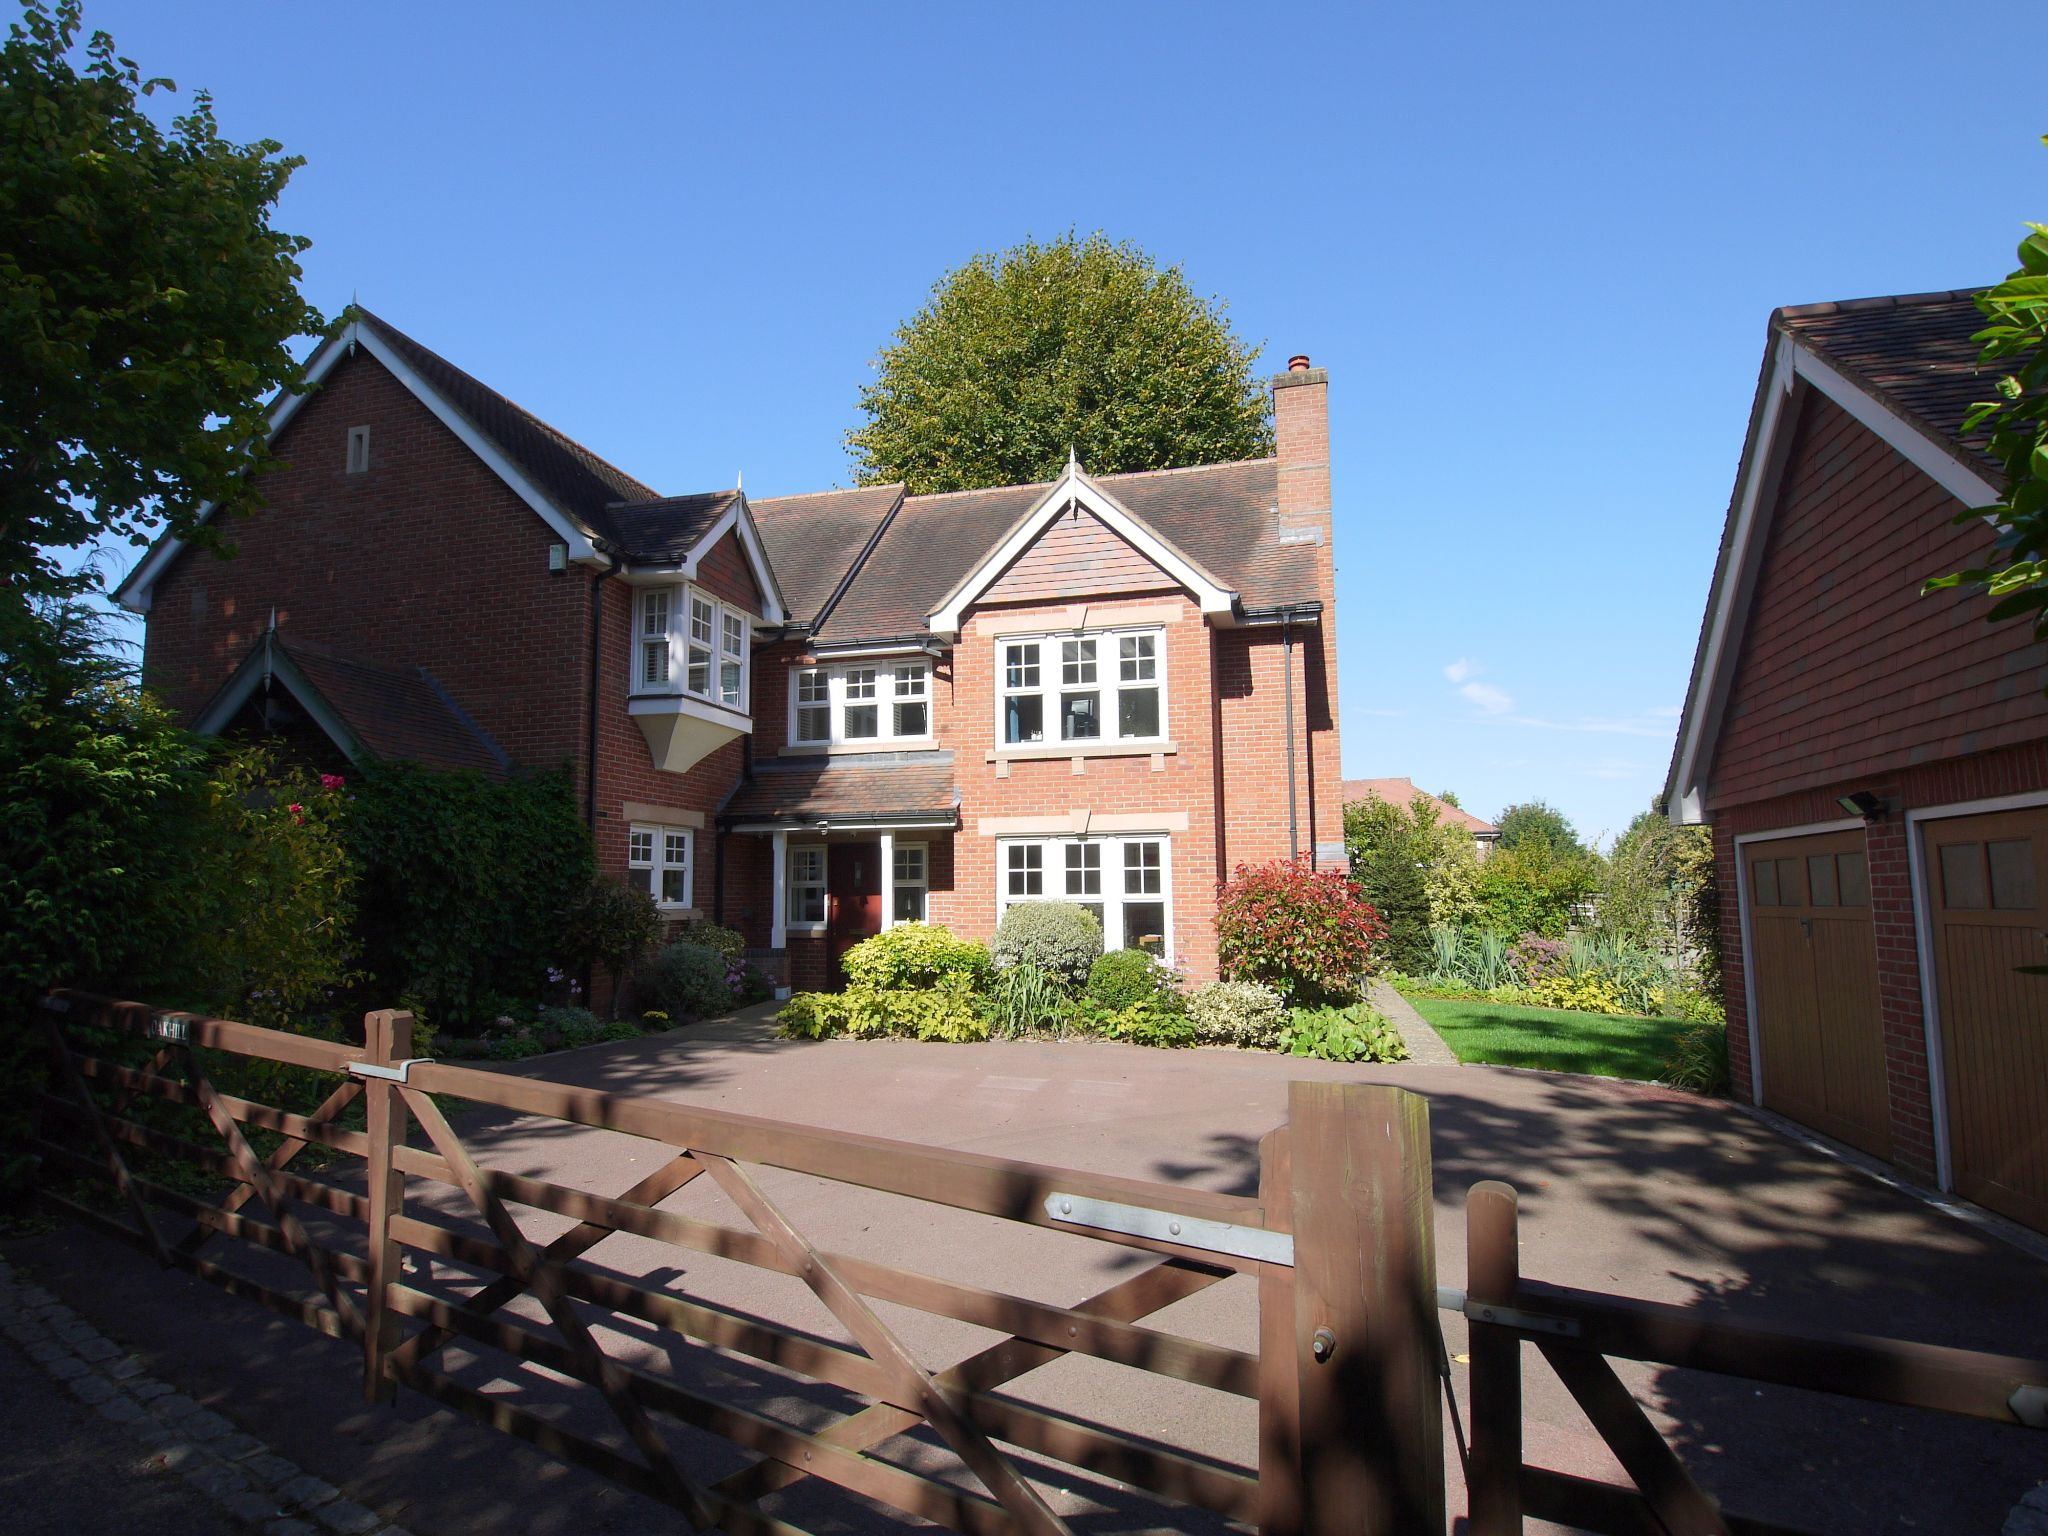 6 bedroom detached house For Sale in Sevenoaks - Photograph 6